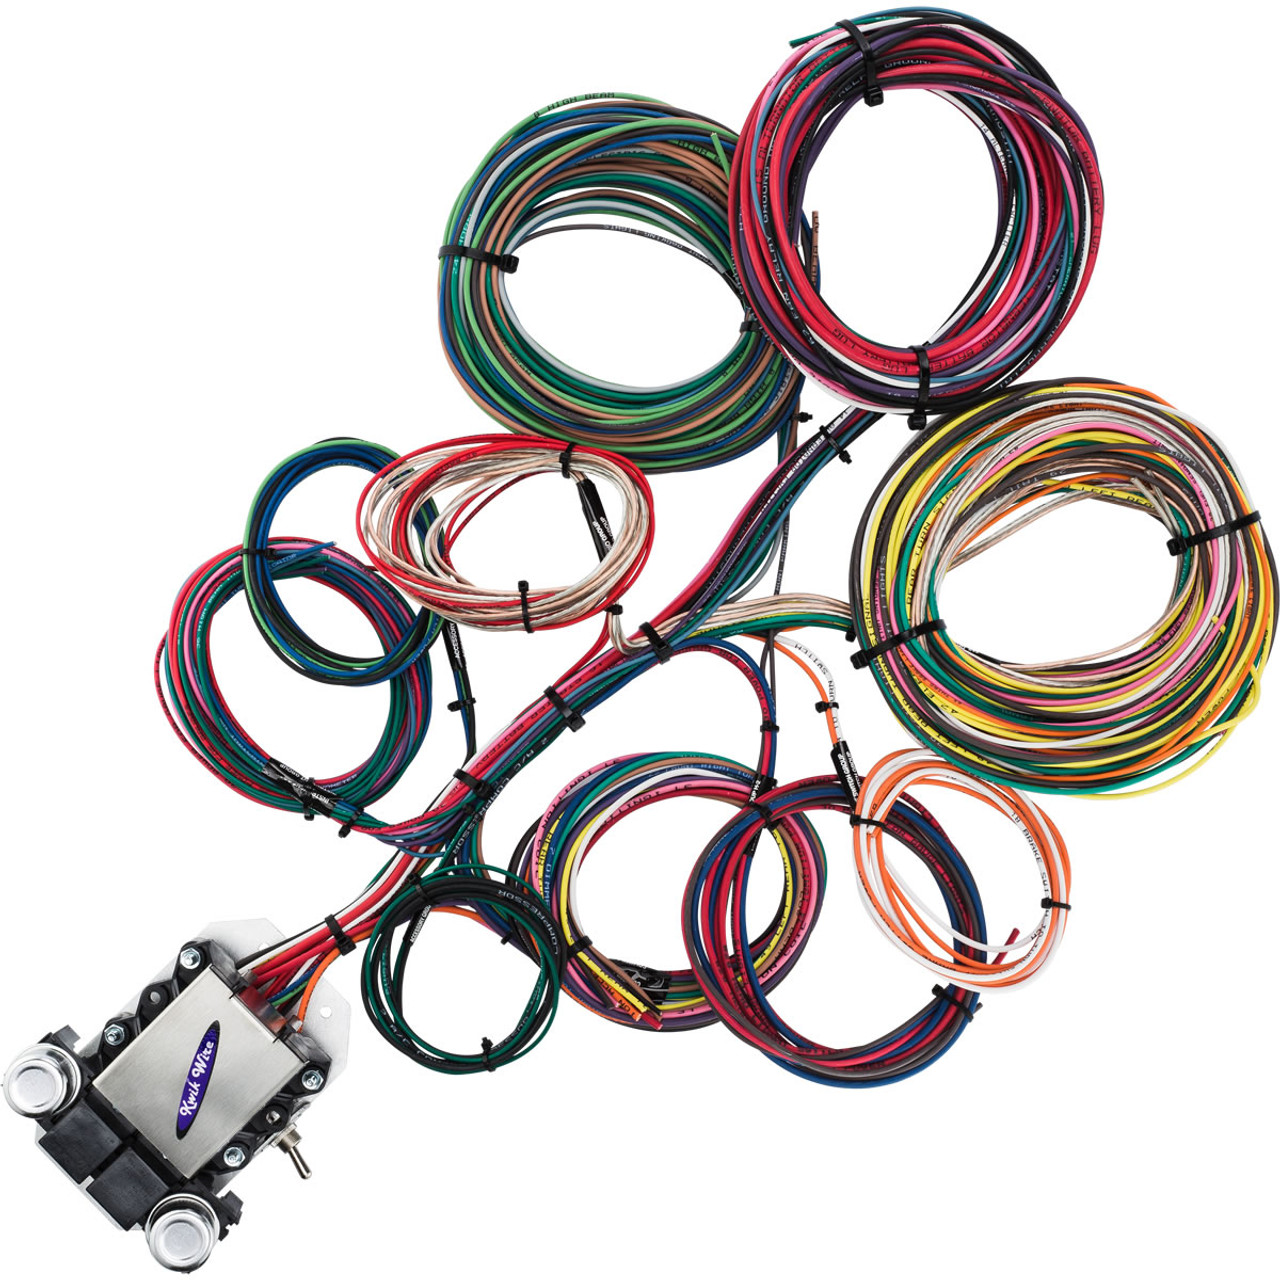 14 Circuit Ford Wire Harness - KwikWire.com | Electrify Your Ride on capacitor labeling, power supply labeling, safety harness labeling, cable labeling, control panel labeling, hose labeling,